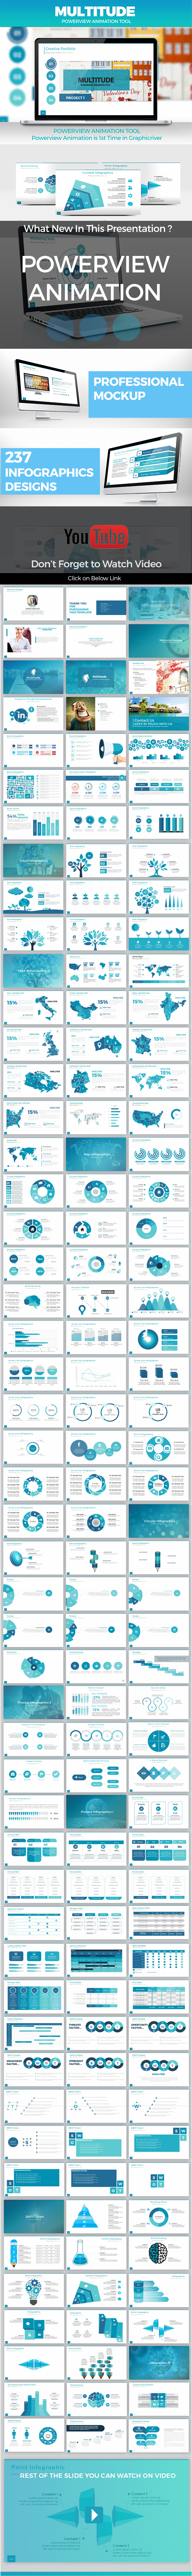 Multitude Multipurose Powerpoint Template With Powerview Animation (PowerPoint Templates)